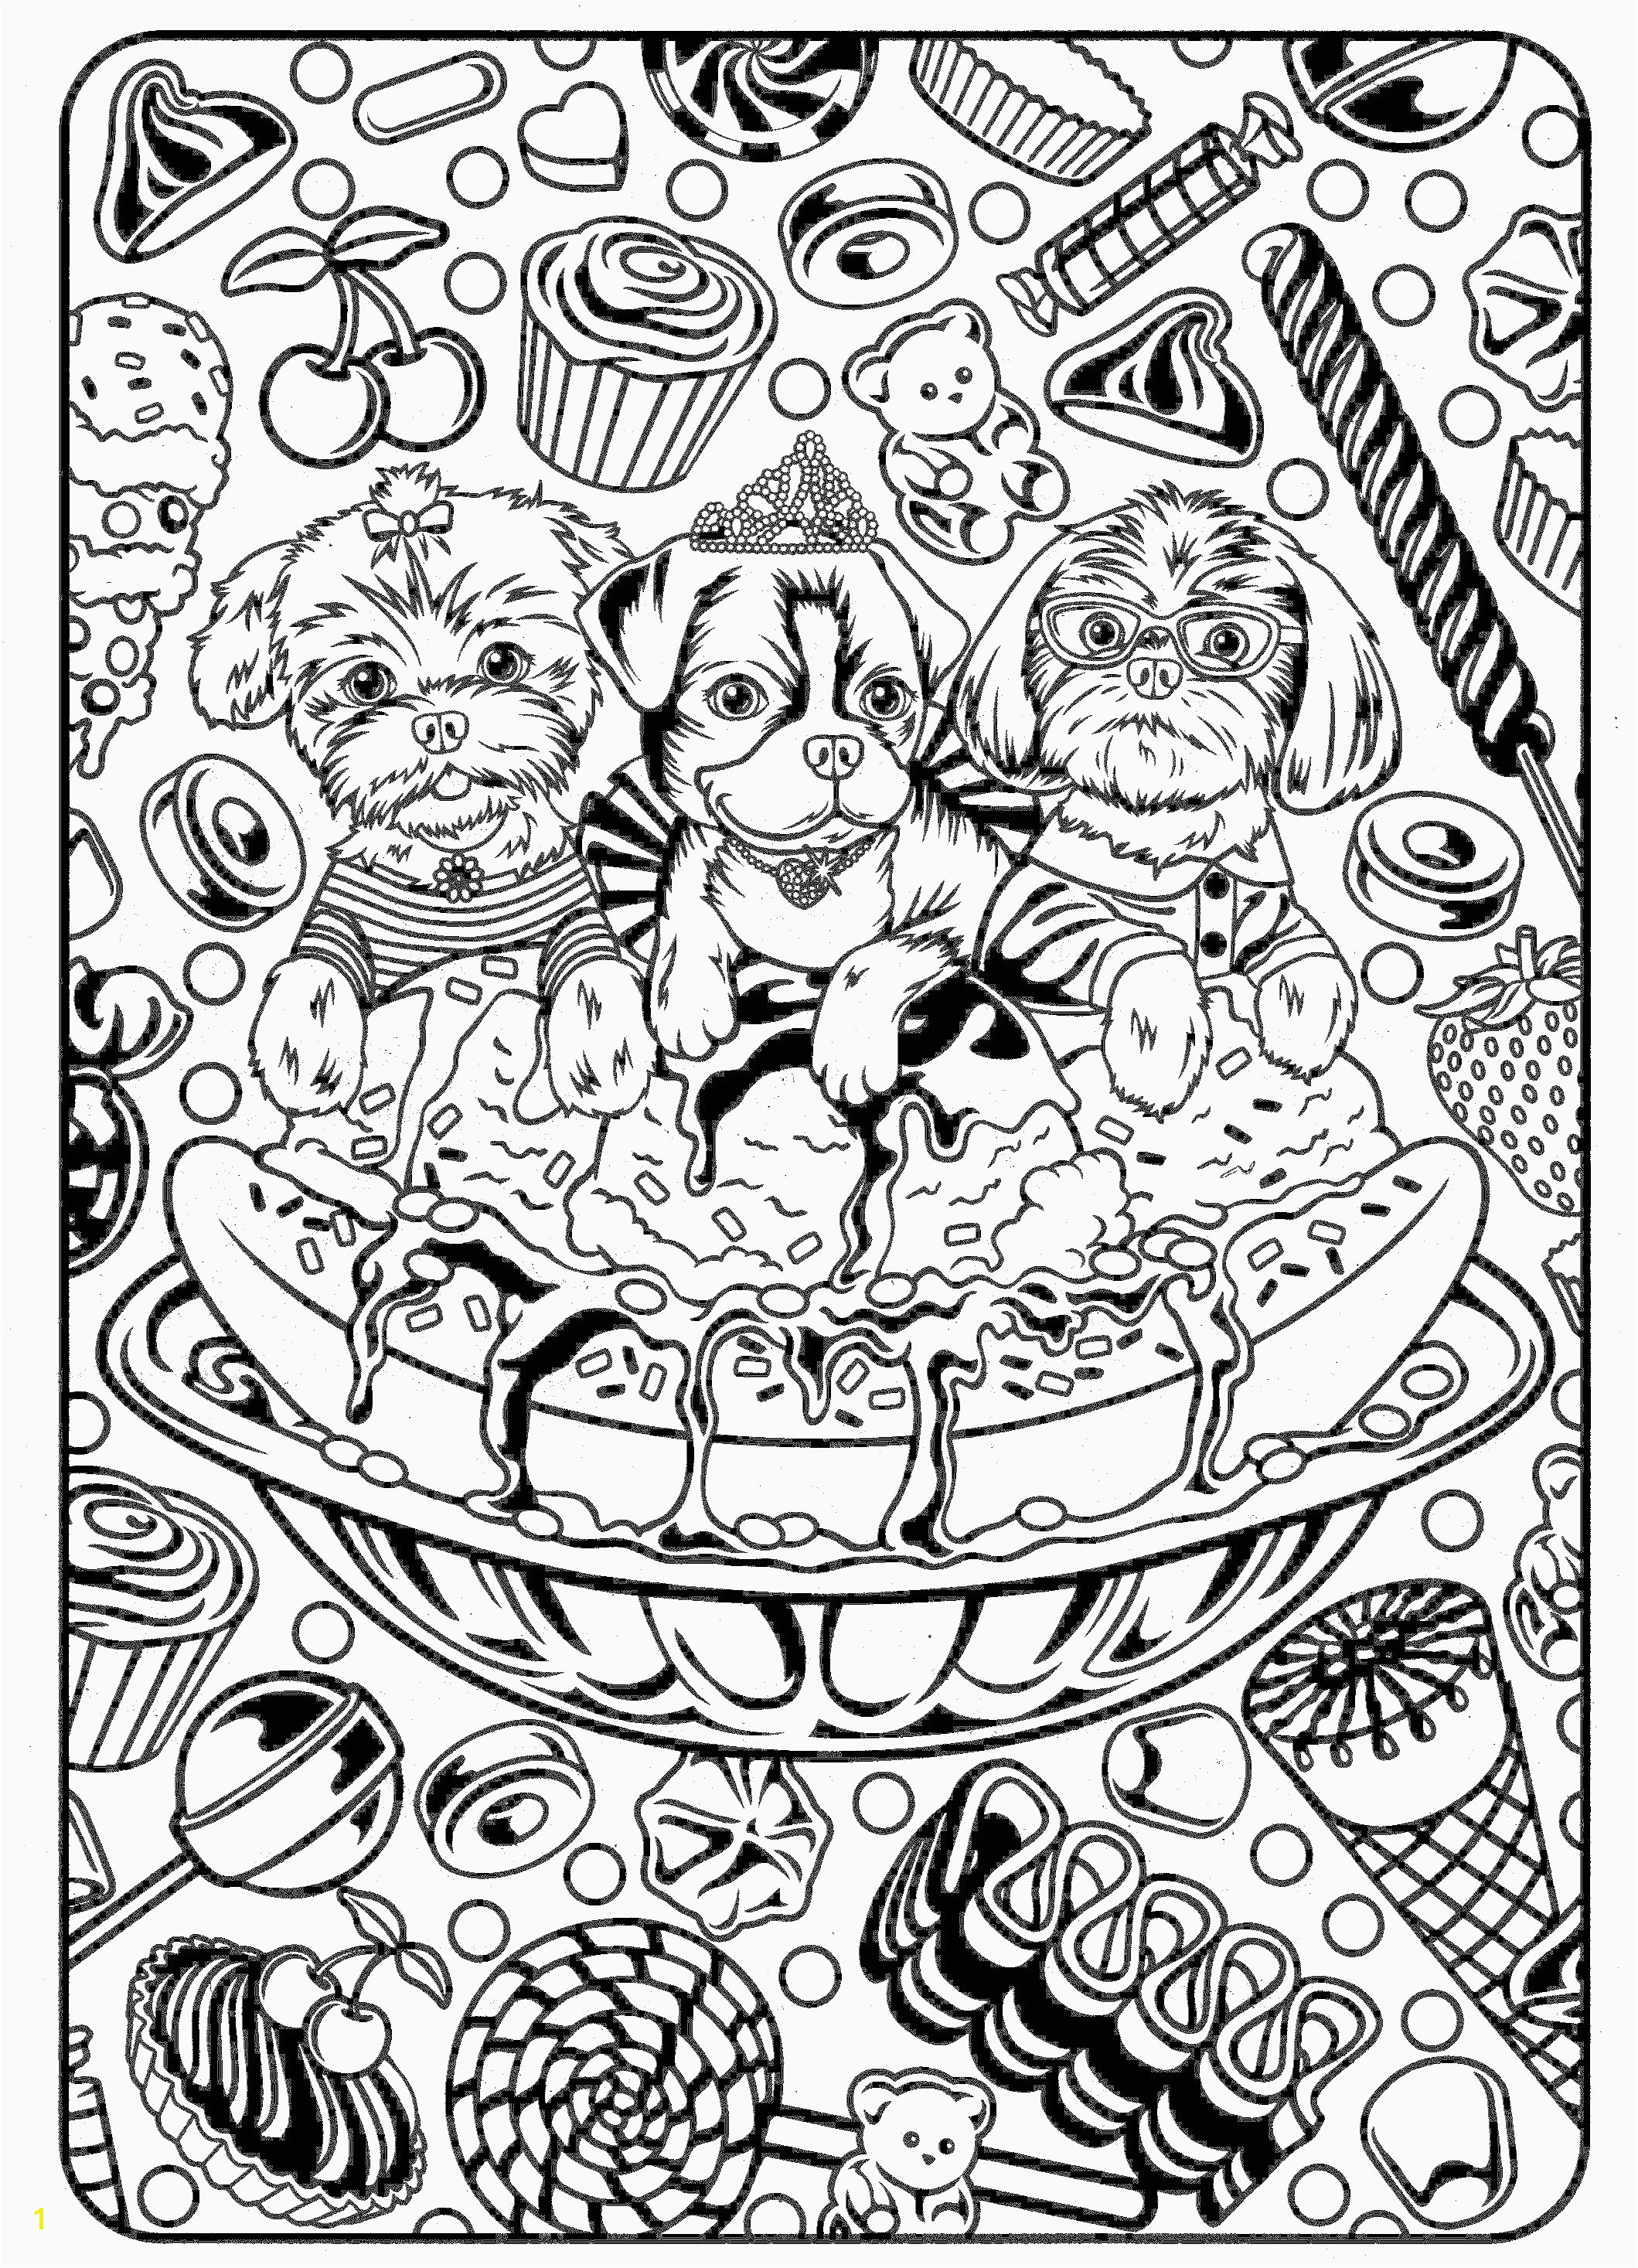 Open Window Coloring Page Open Window Coloring Page Elegant Coloring Pages Inspirational